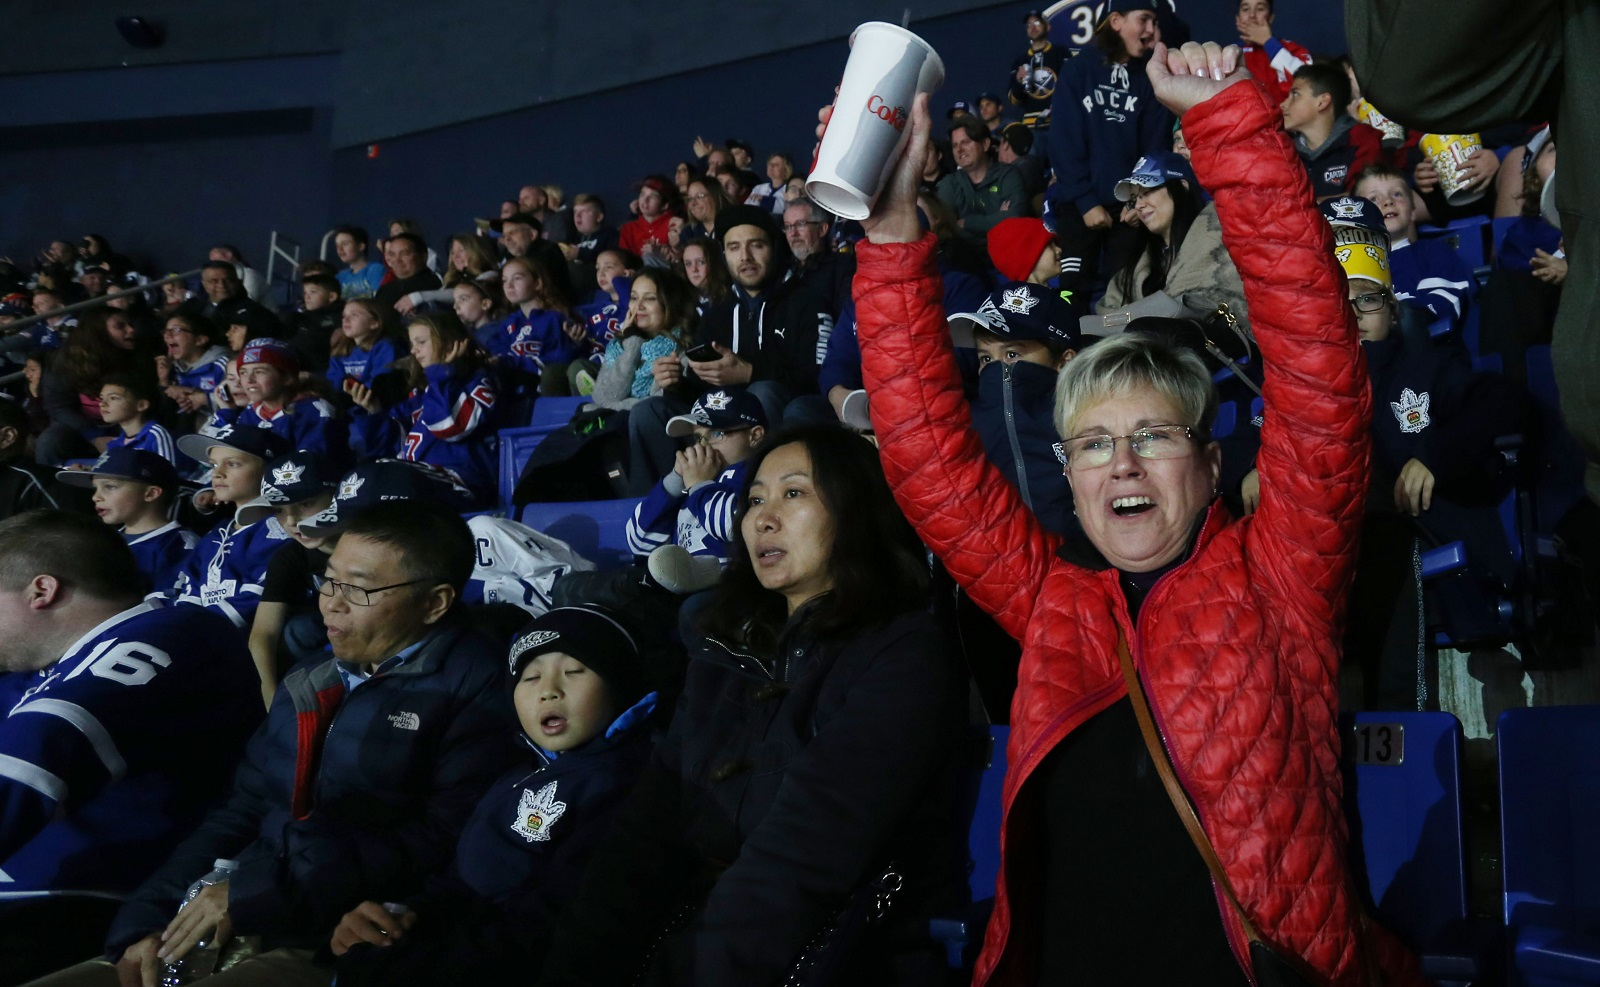 Michelle Krzemien of Darien is one of the few to celebrate the Sabres lone goal in a section that is mostly filled with Leafs fans. (Sharon Cantillon/Buffalo News)